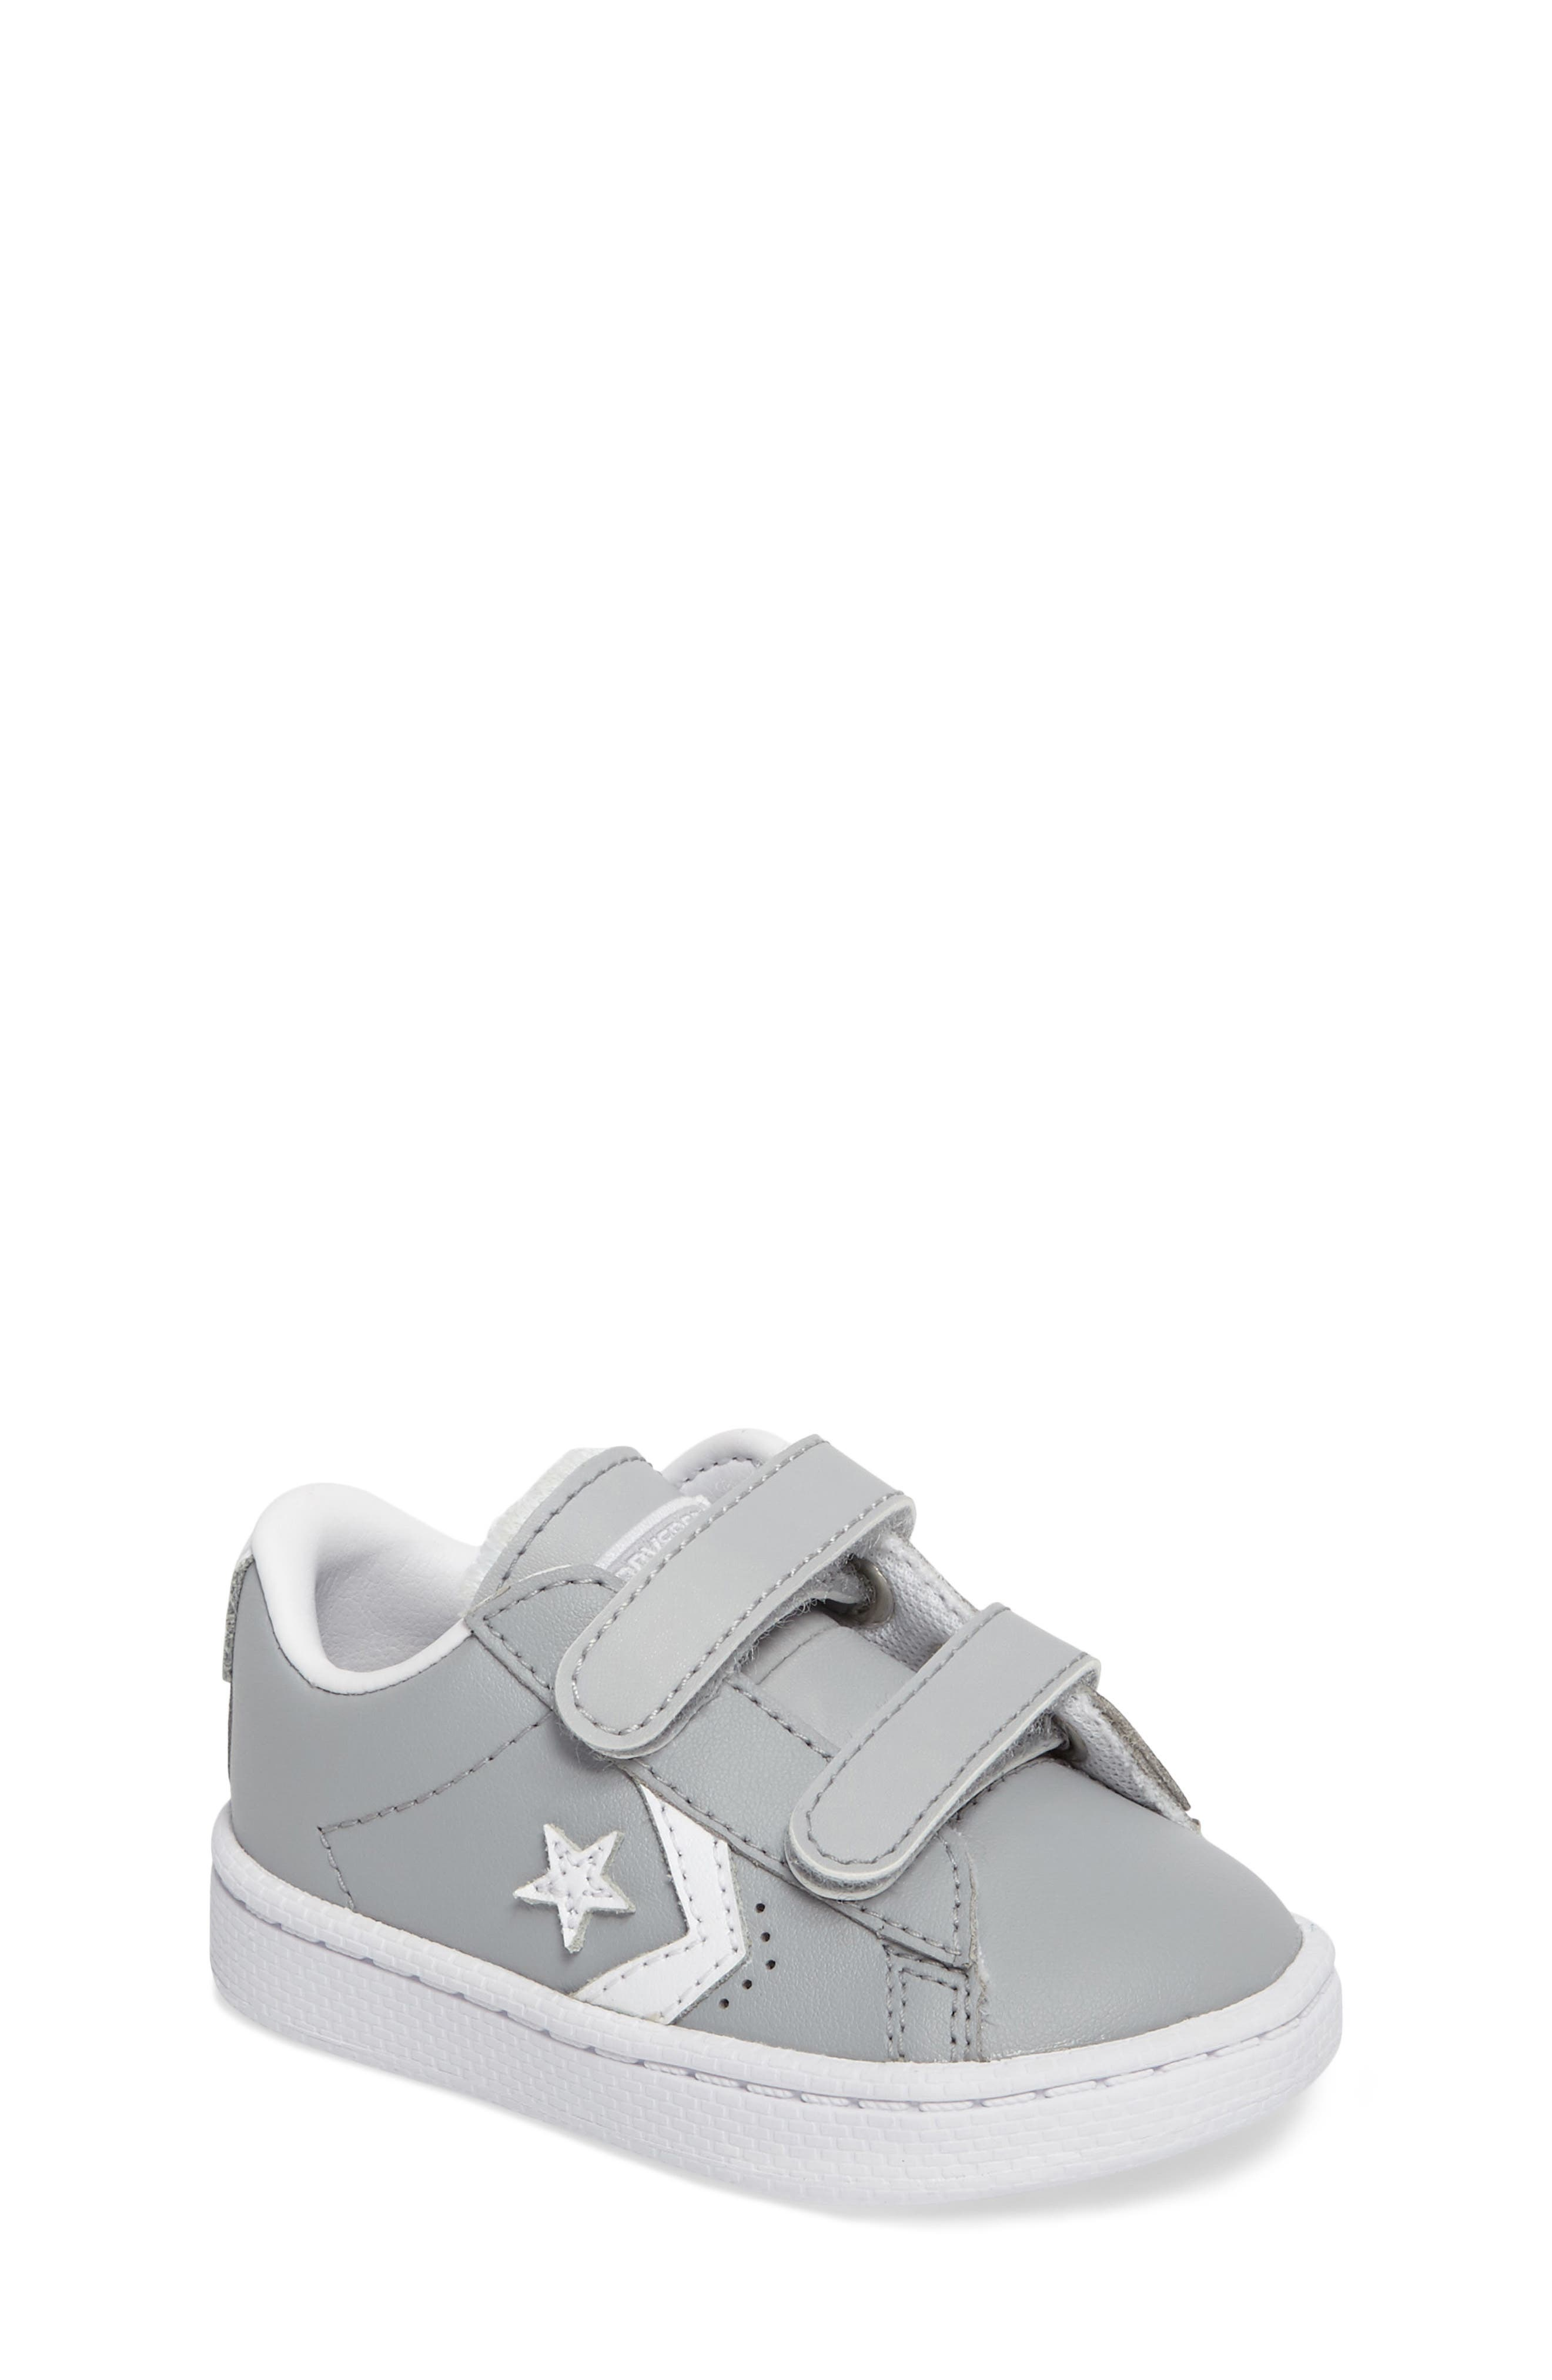 Main Image - Converse Pro Leather Low Top Sneaker (Baby, Walker, & Toddler)